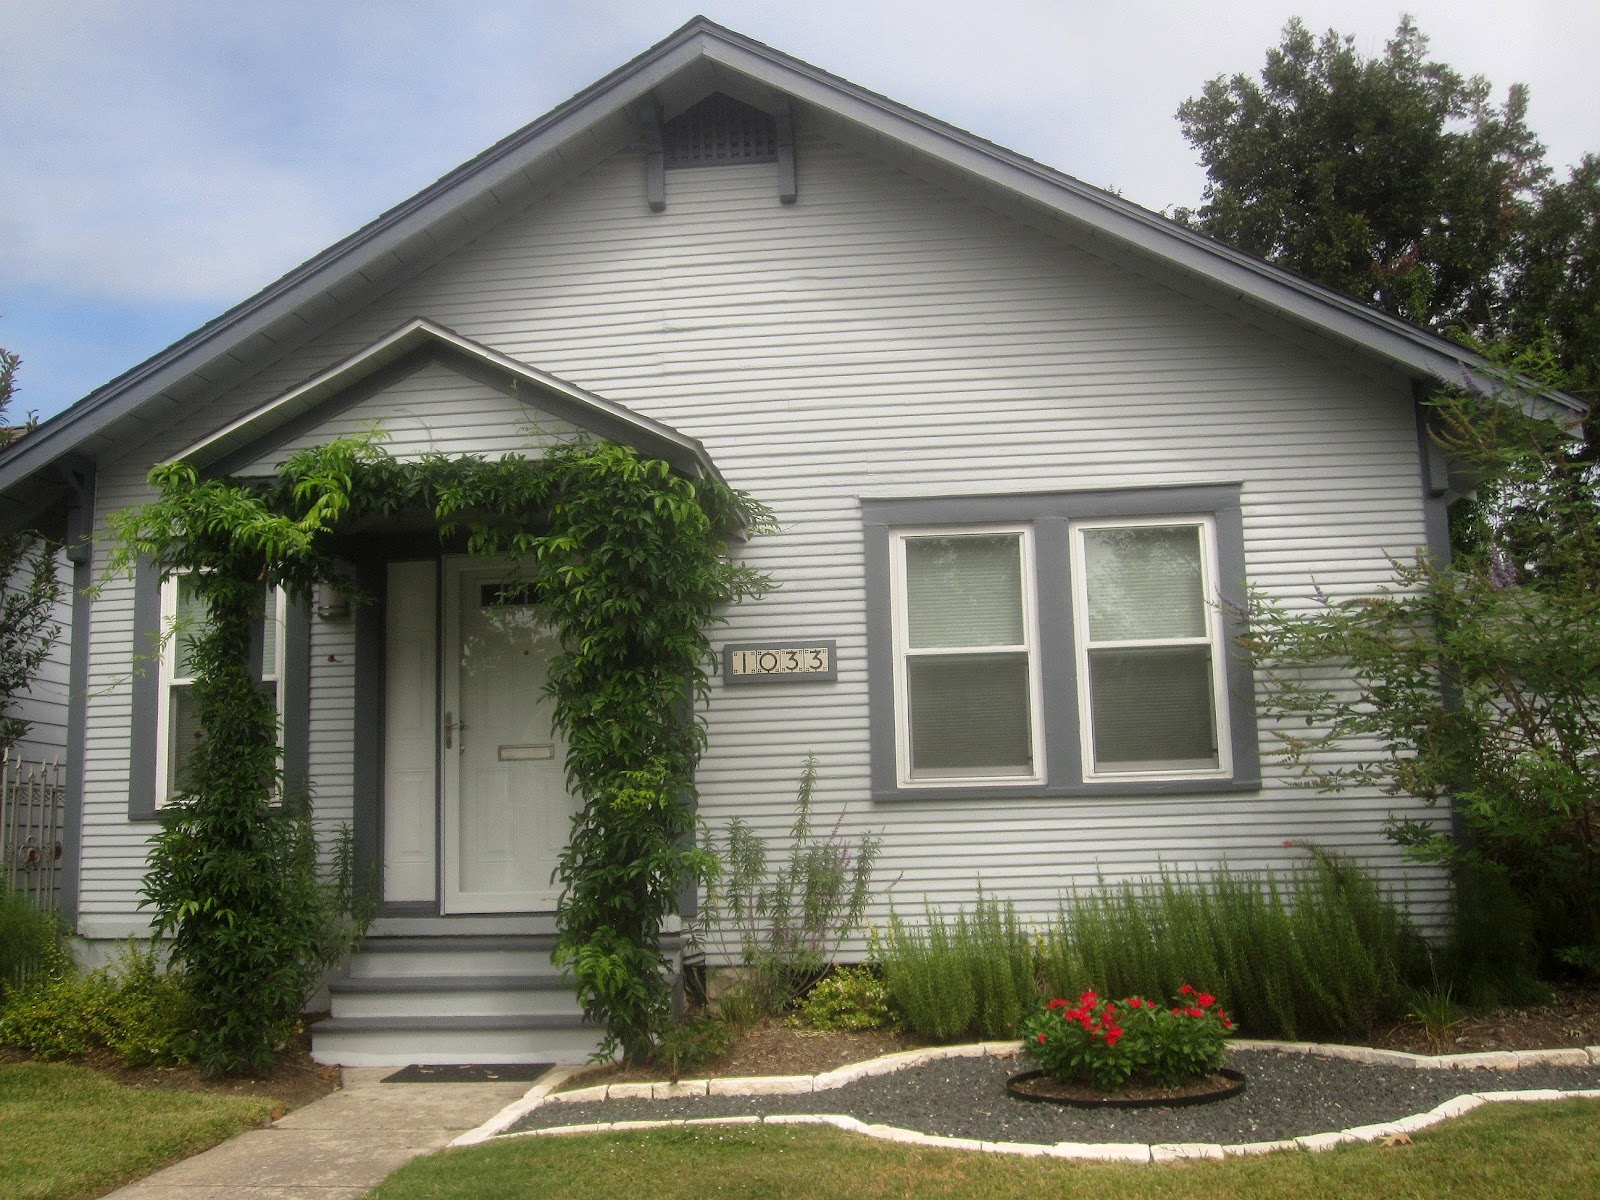 The OtHeR HoUsToN: BUNGALOWS IN THE NORHILL HISTORIC DISTRICT